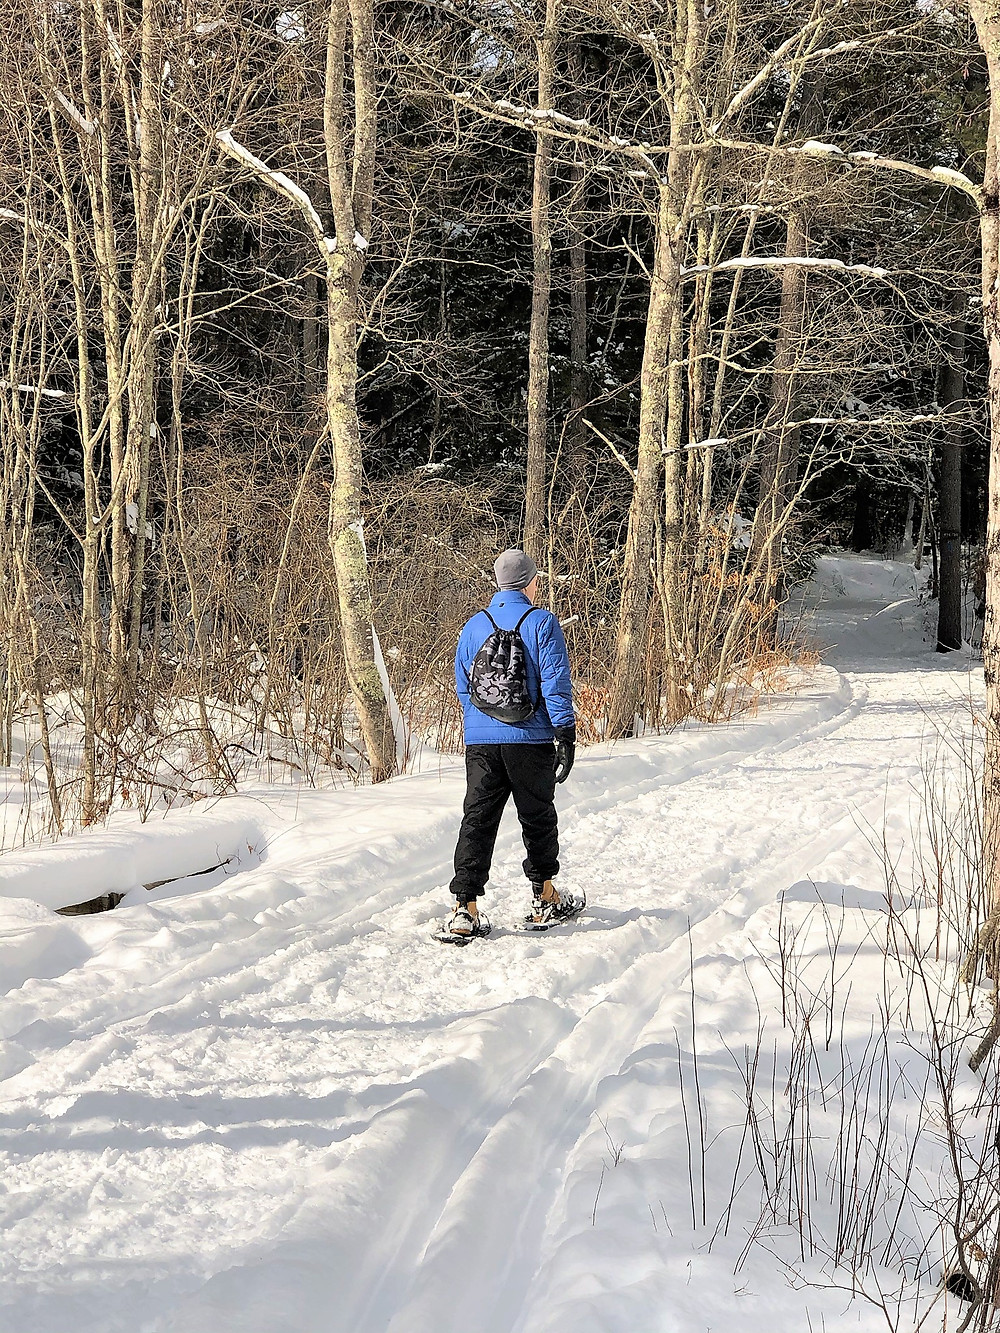 Snowshoeing at Beaver Brook Conservation Lands in Hollis New Hampshire